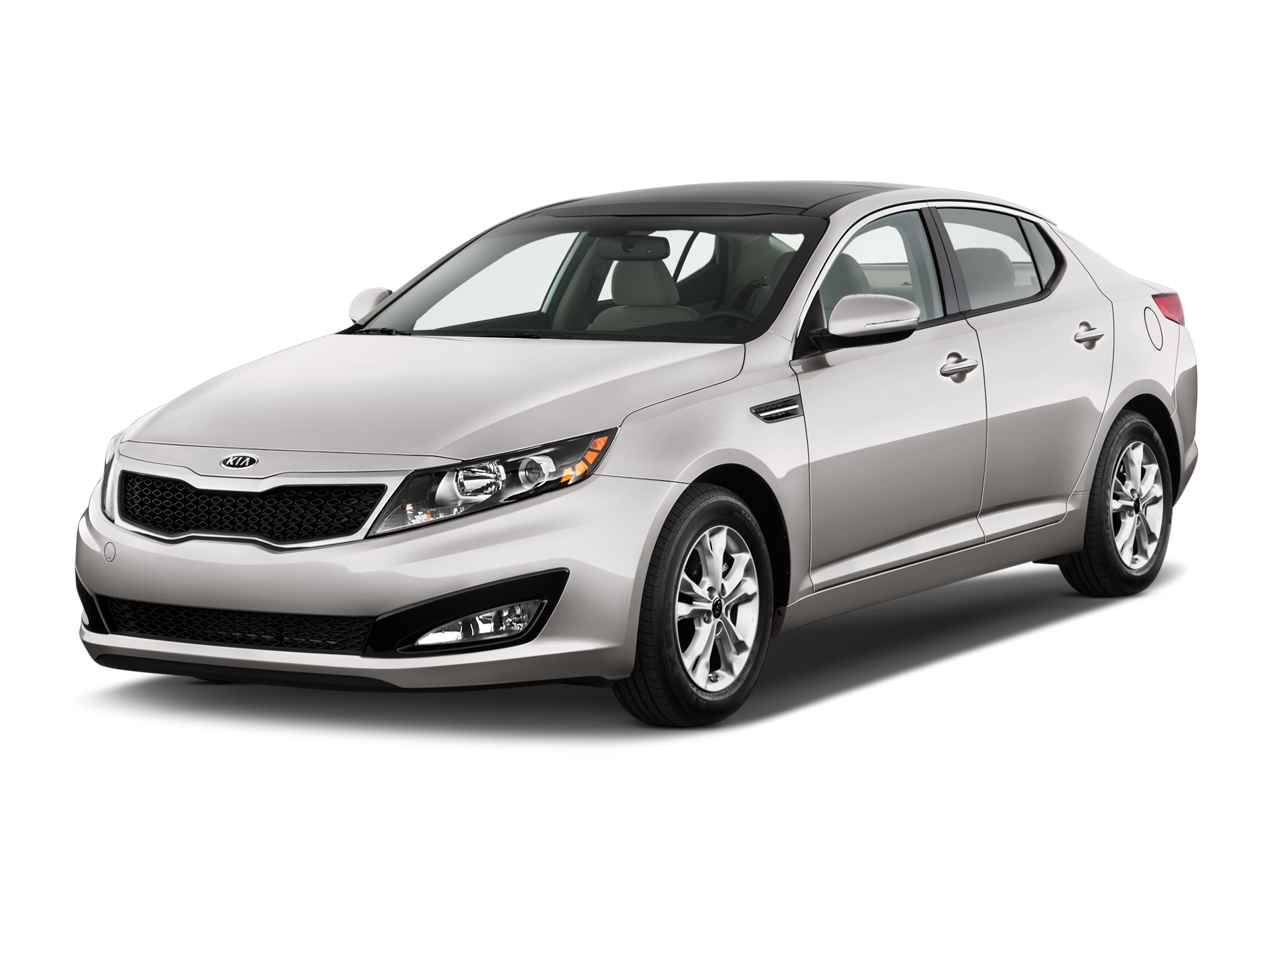 2013 kia optima for sale